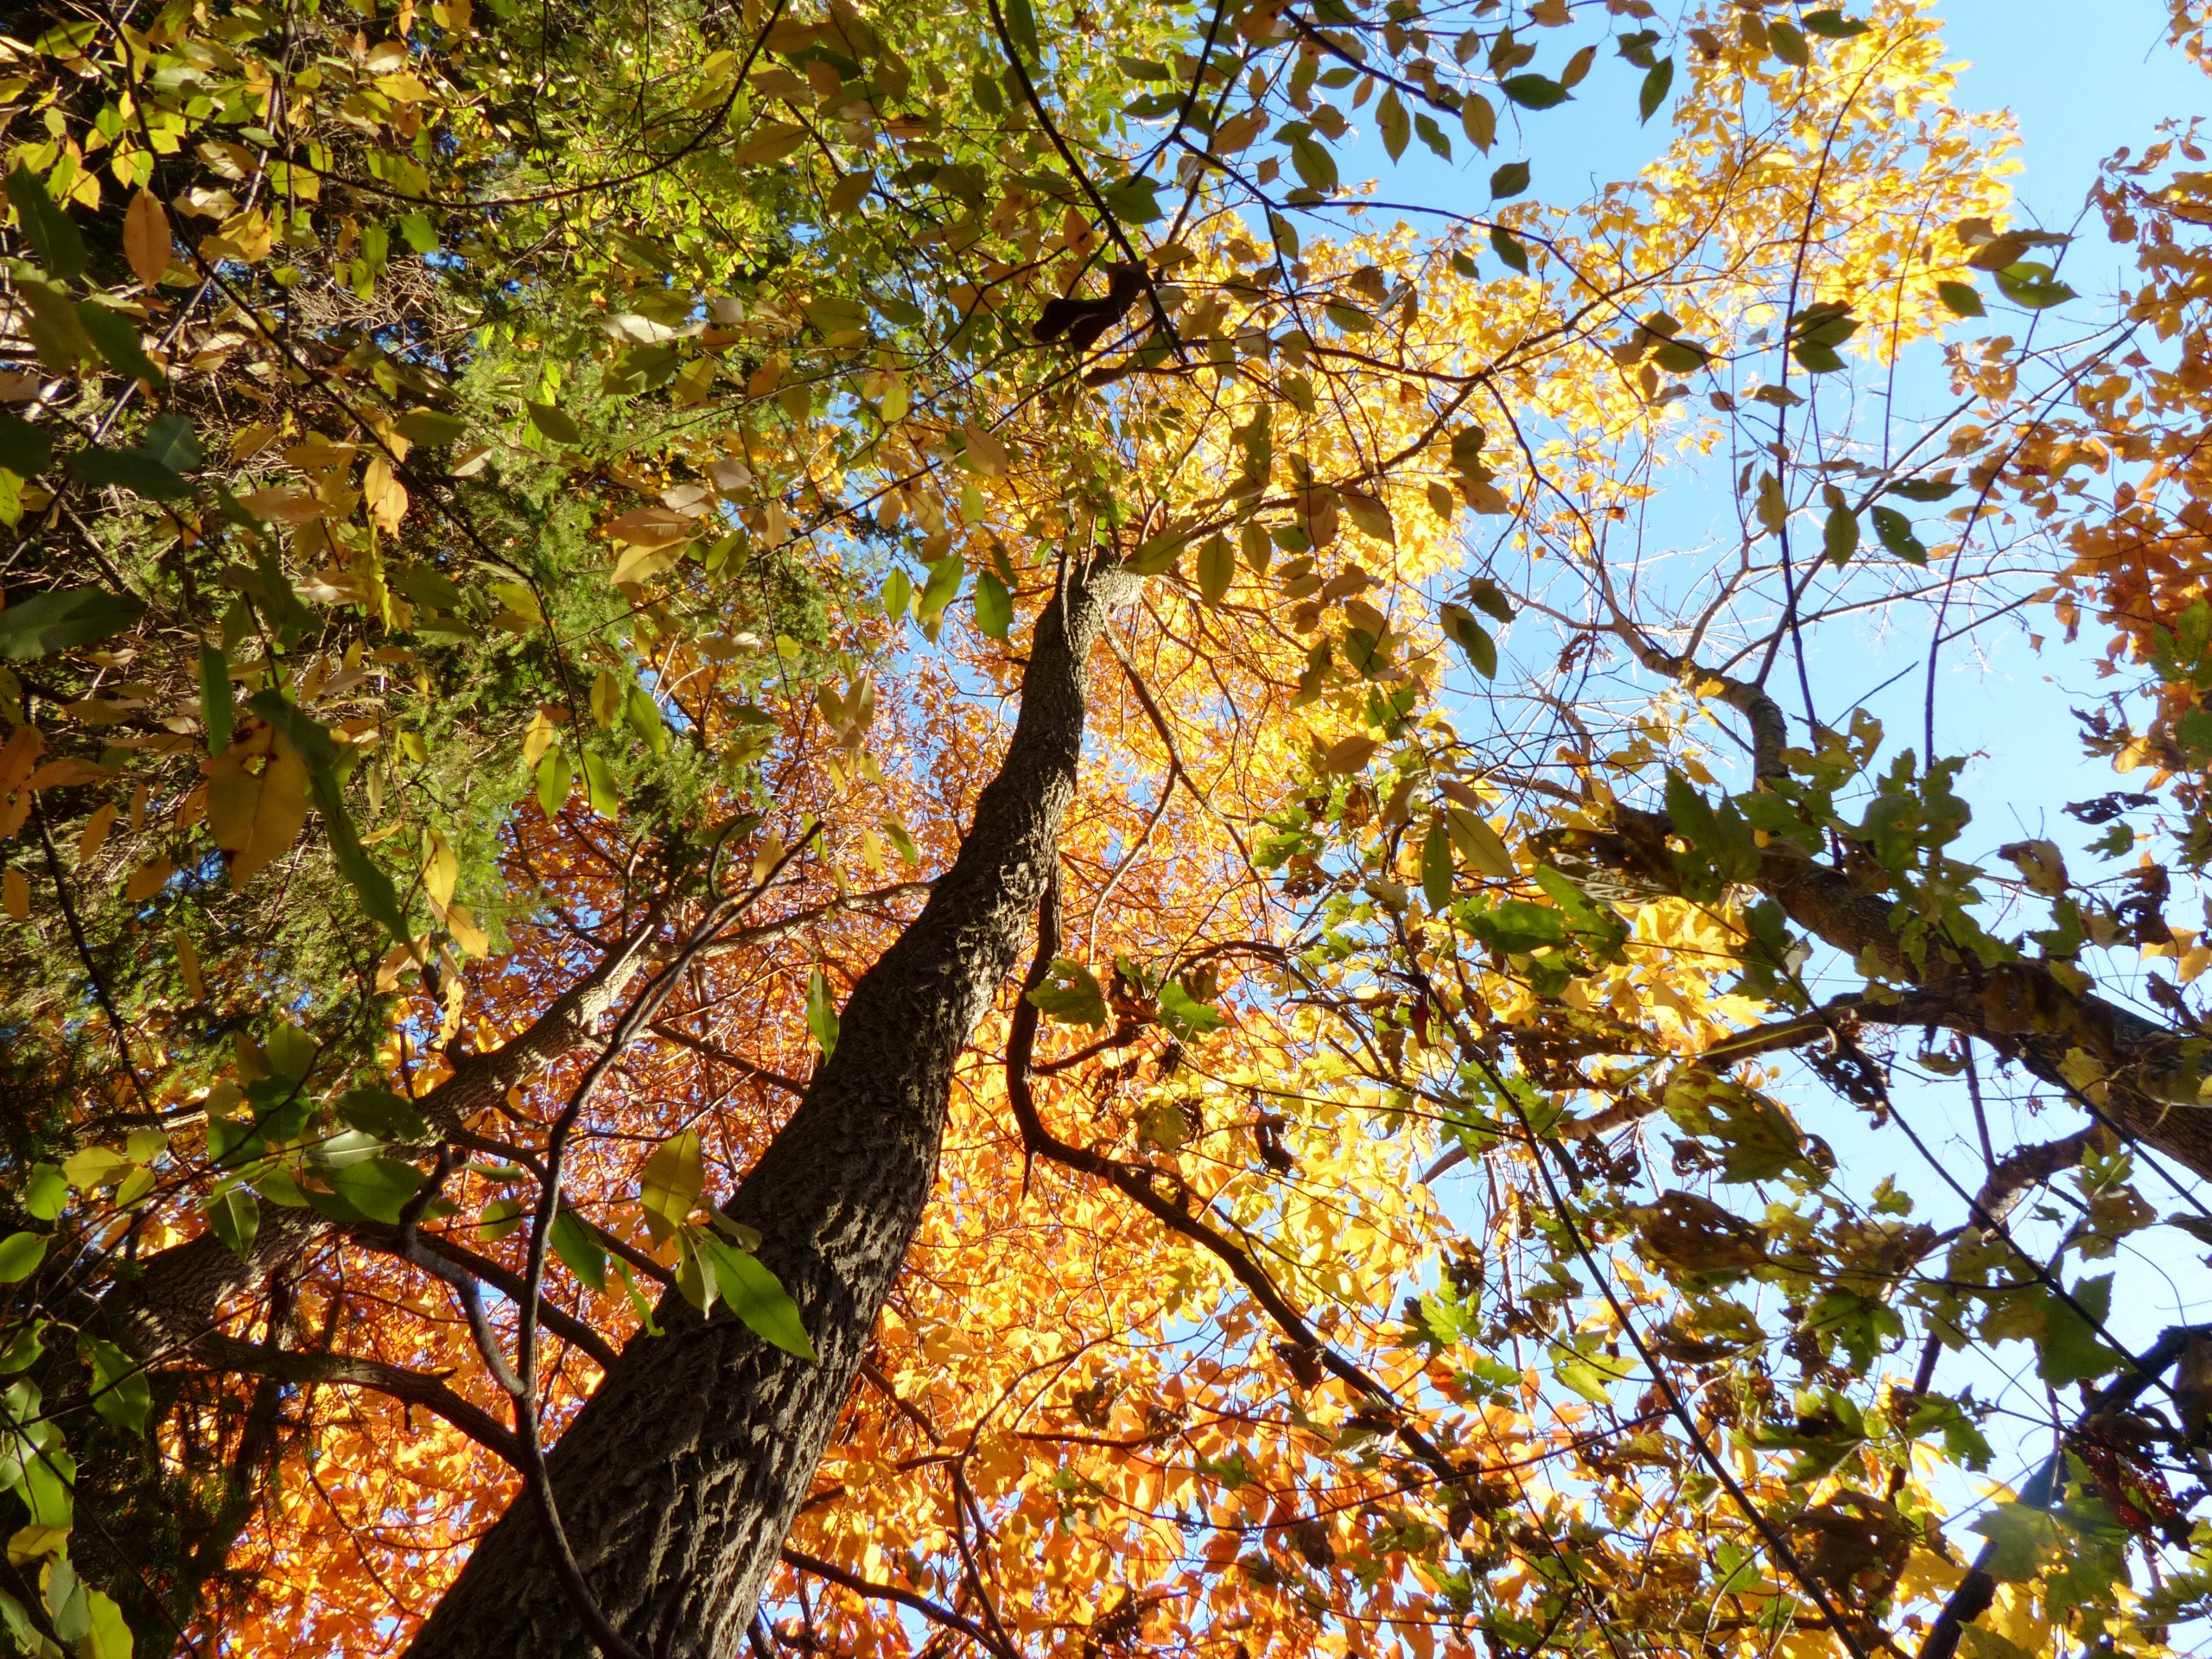 sassafras trunk and fall foliage color